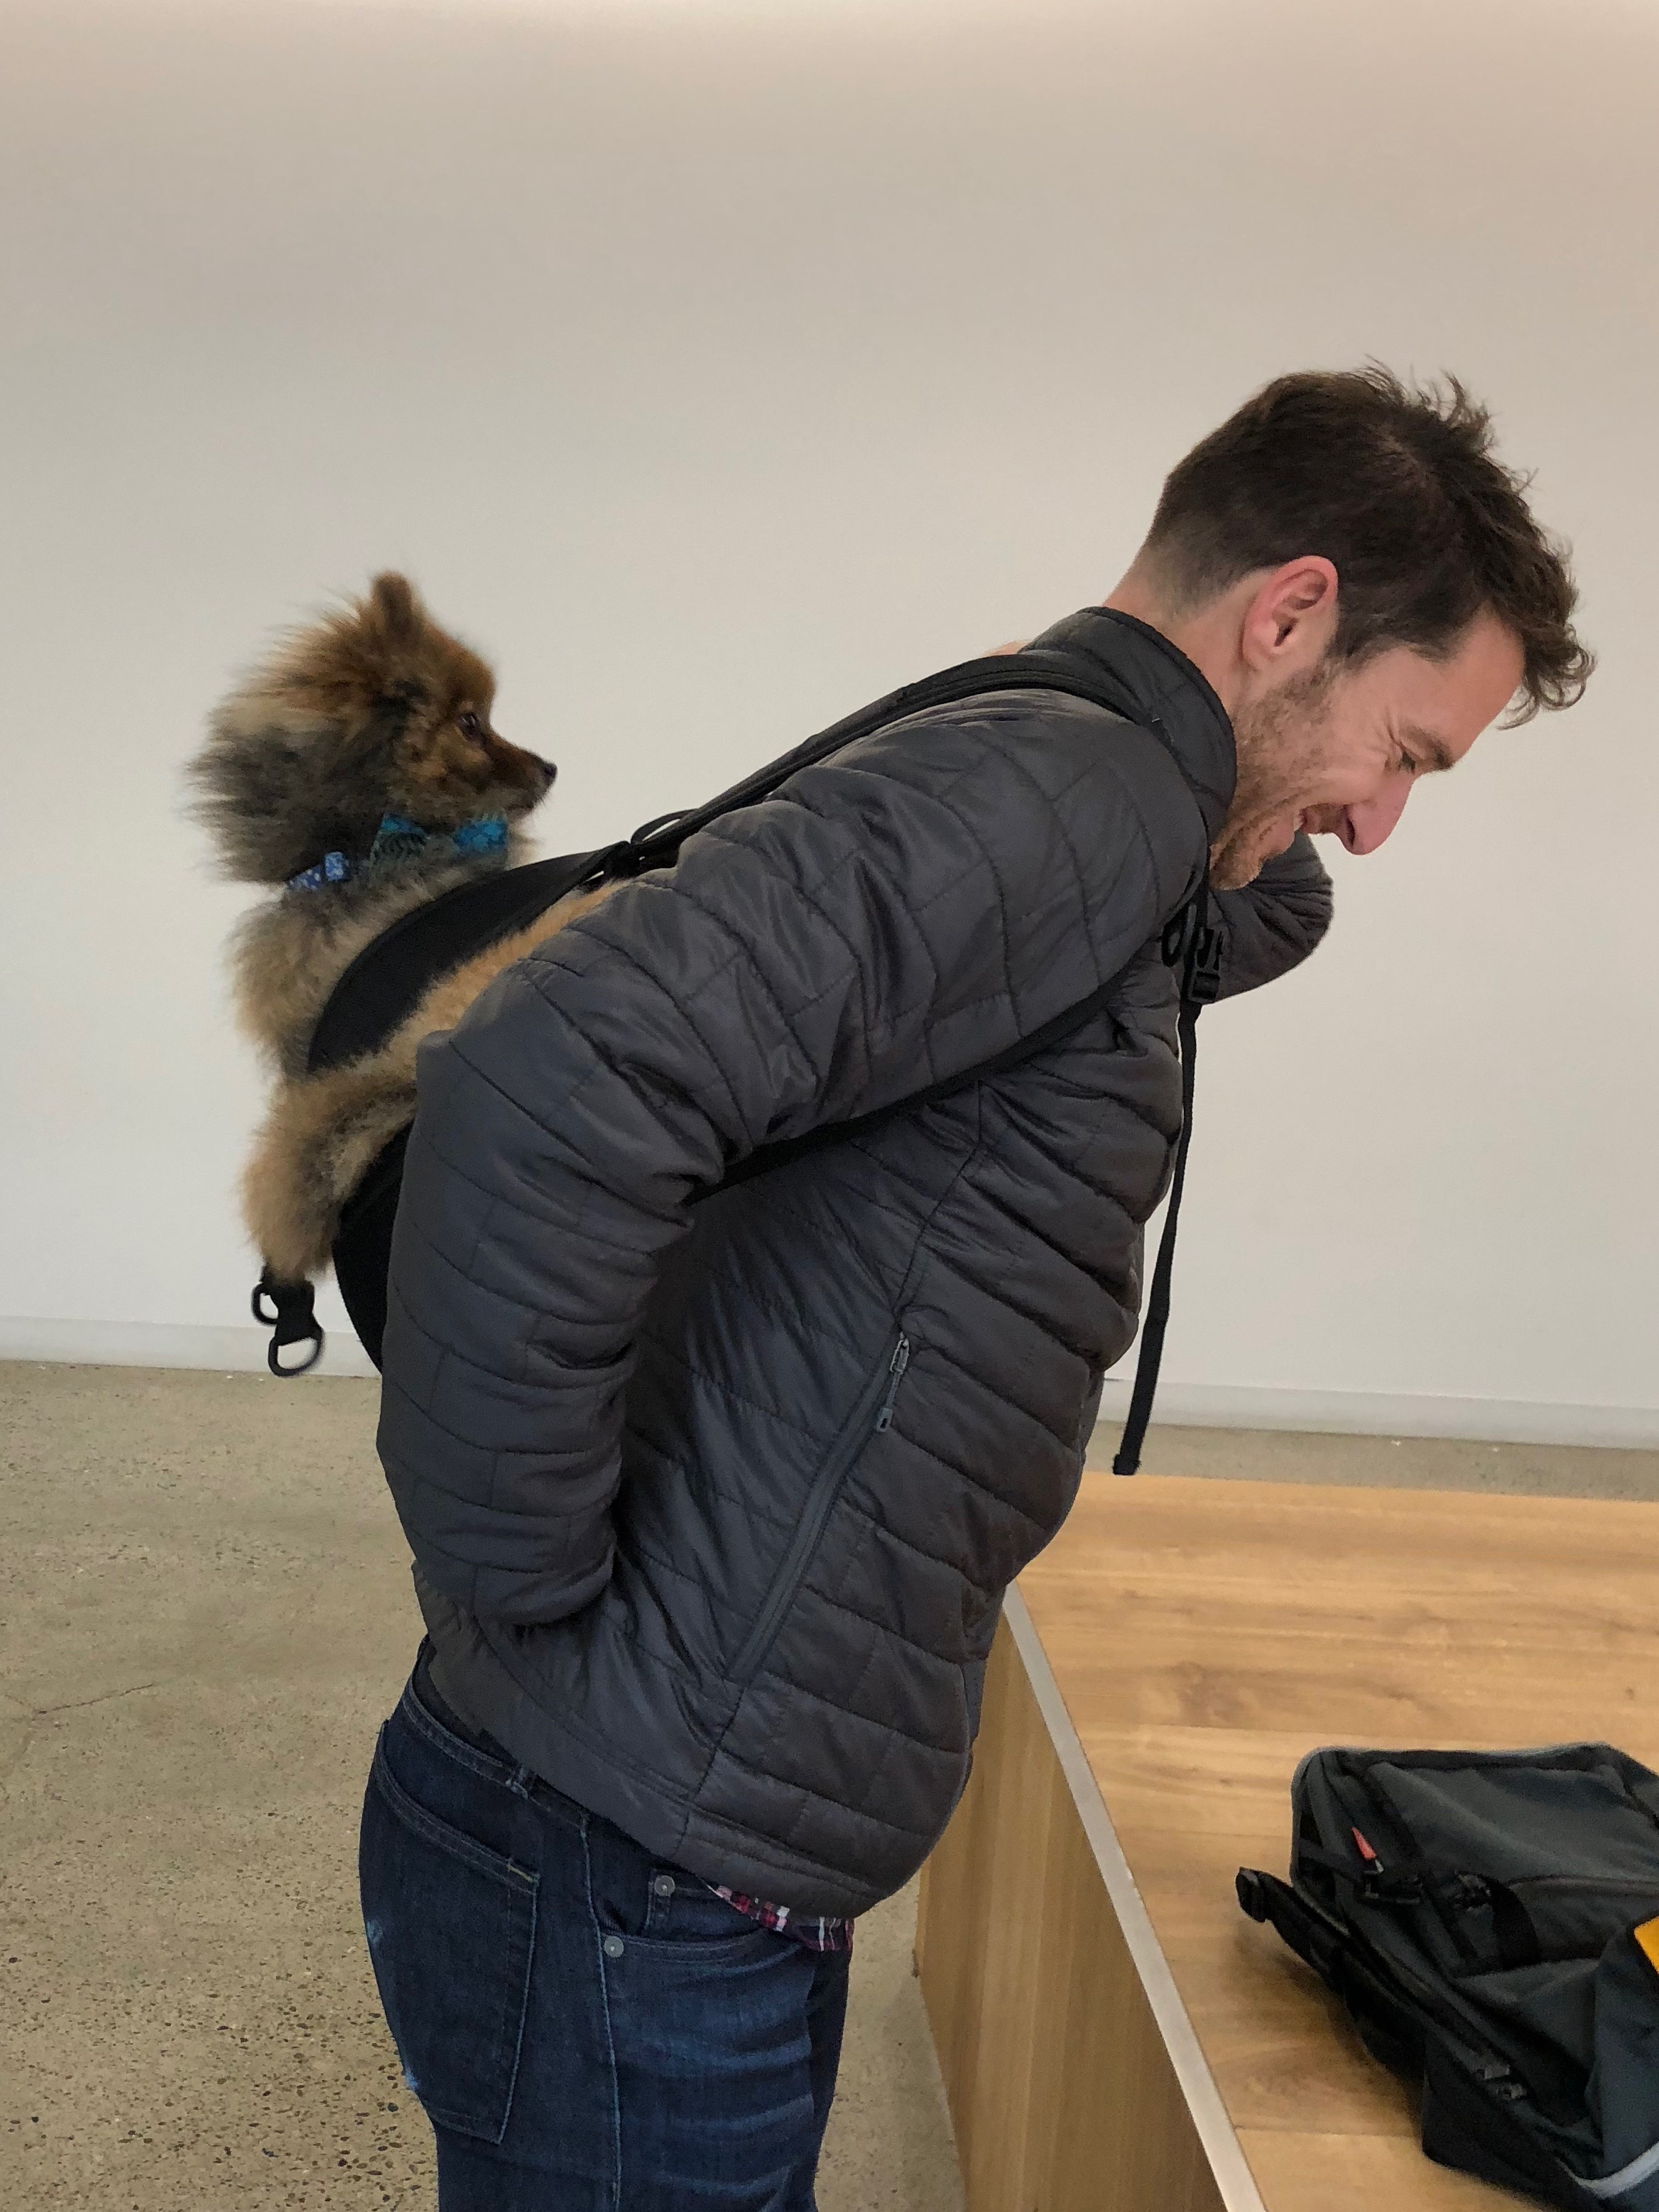 Man With Pomeranian Strapped To His Back